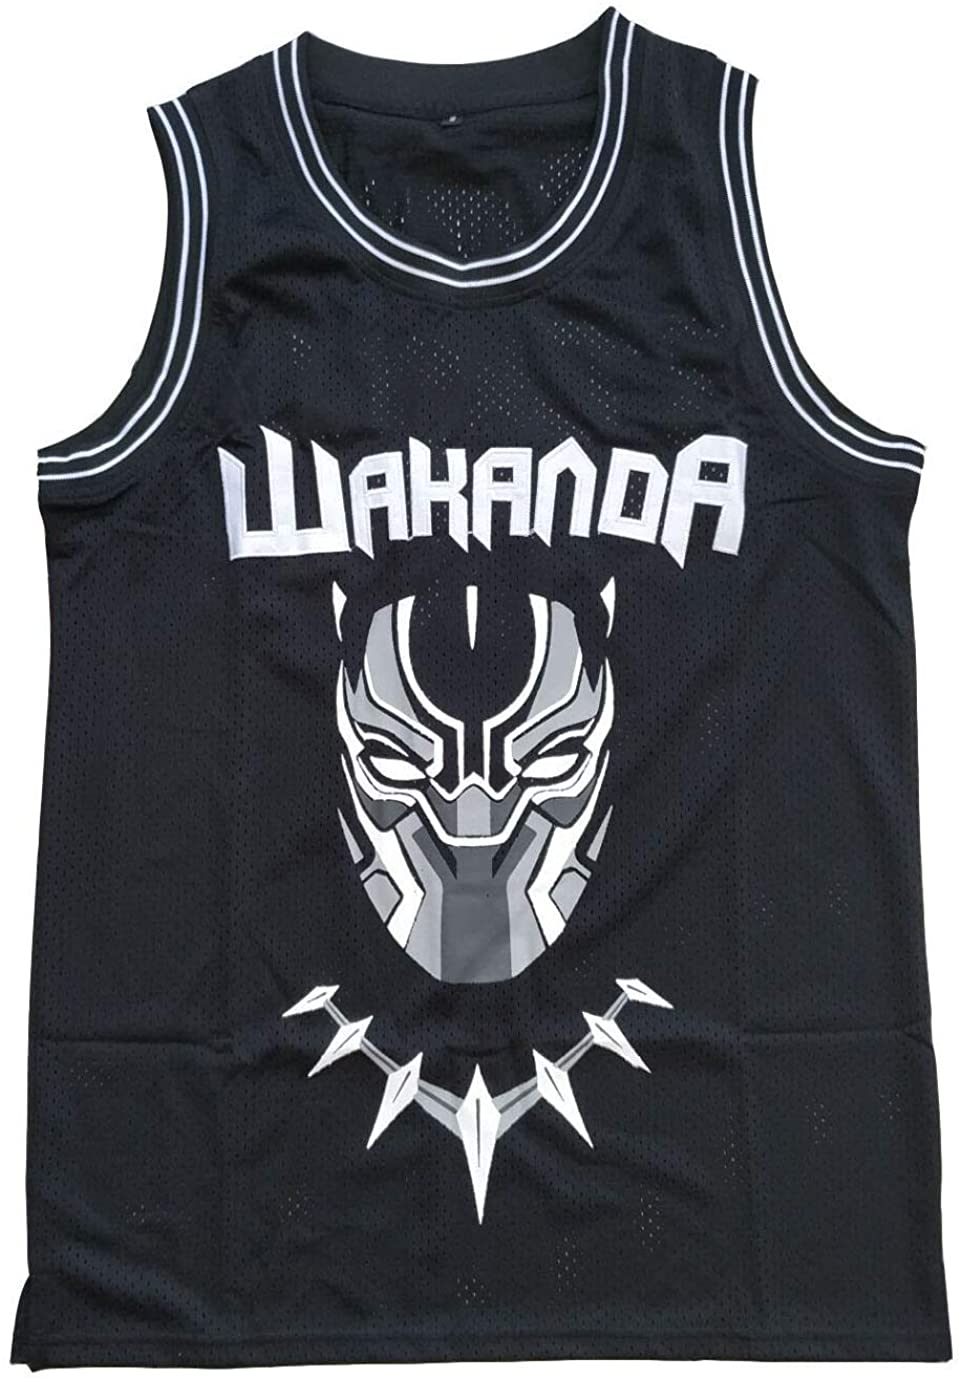 Black Panther T'Challa Jersey